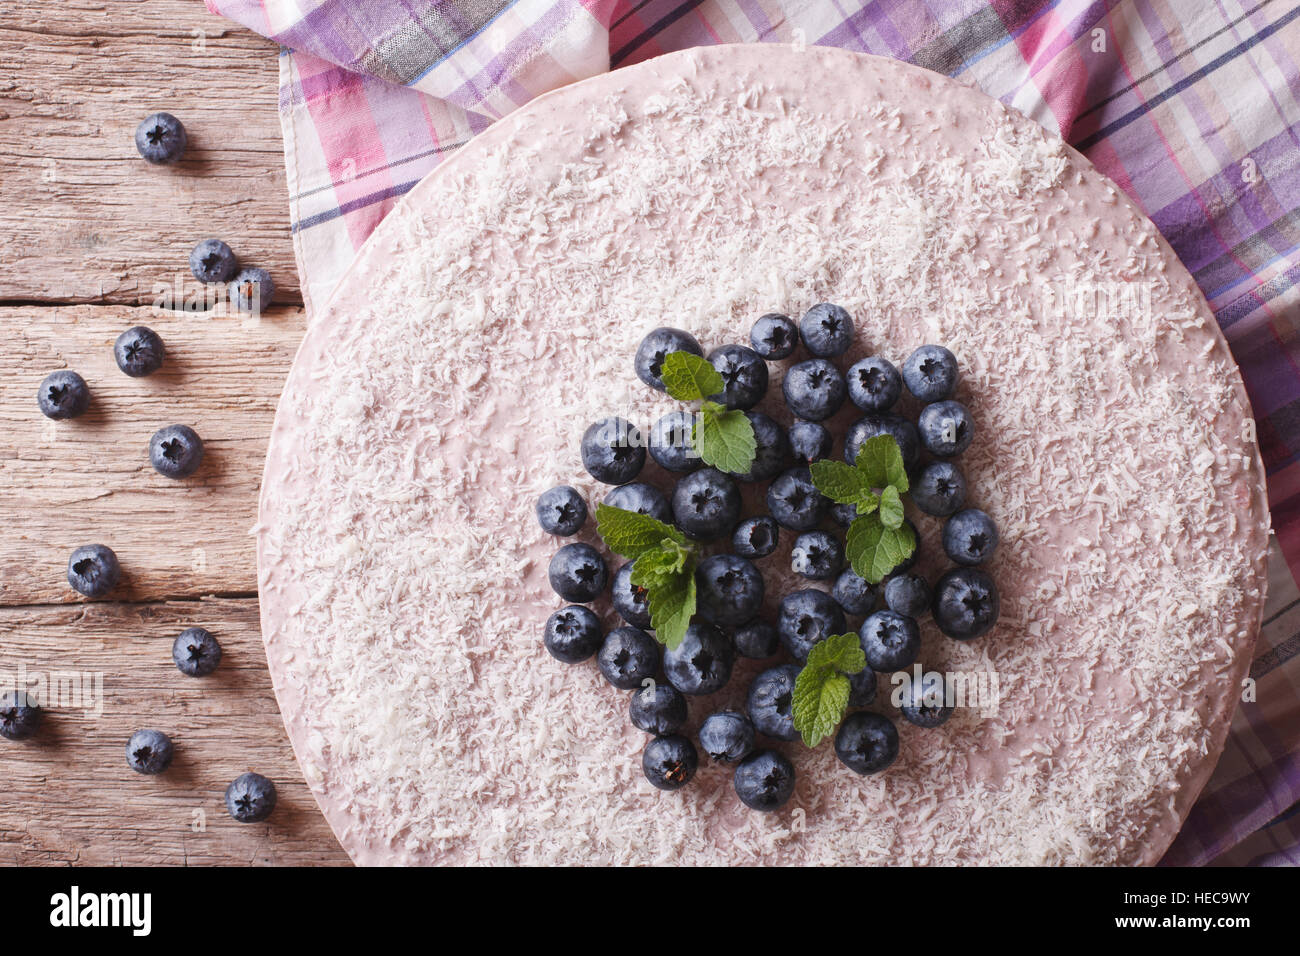 blueberry cheesecake with mint and coconut on the table close-up. horizontal view from above - Stock Image